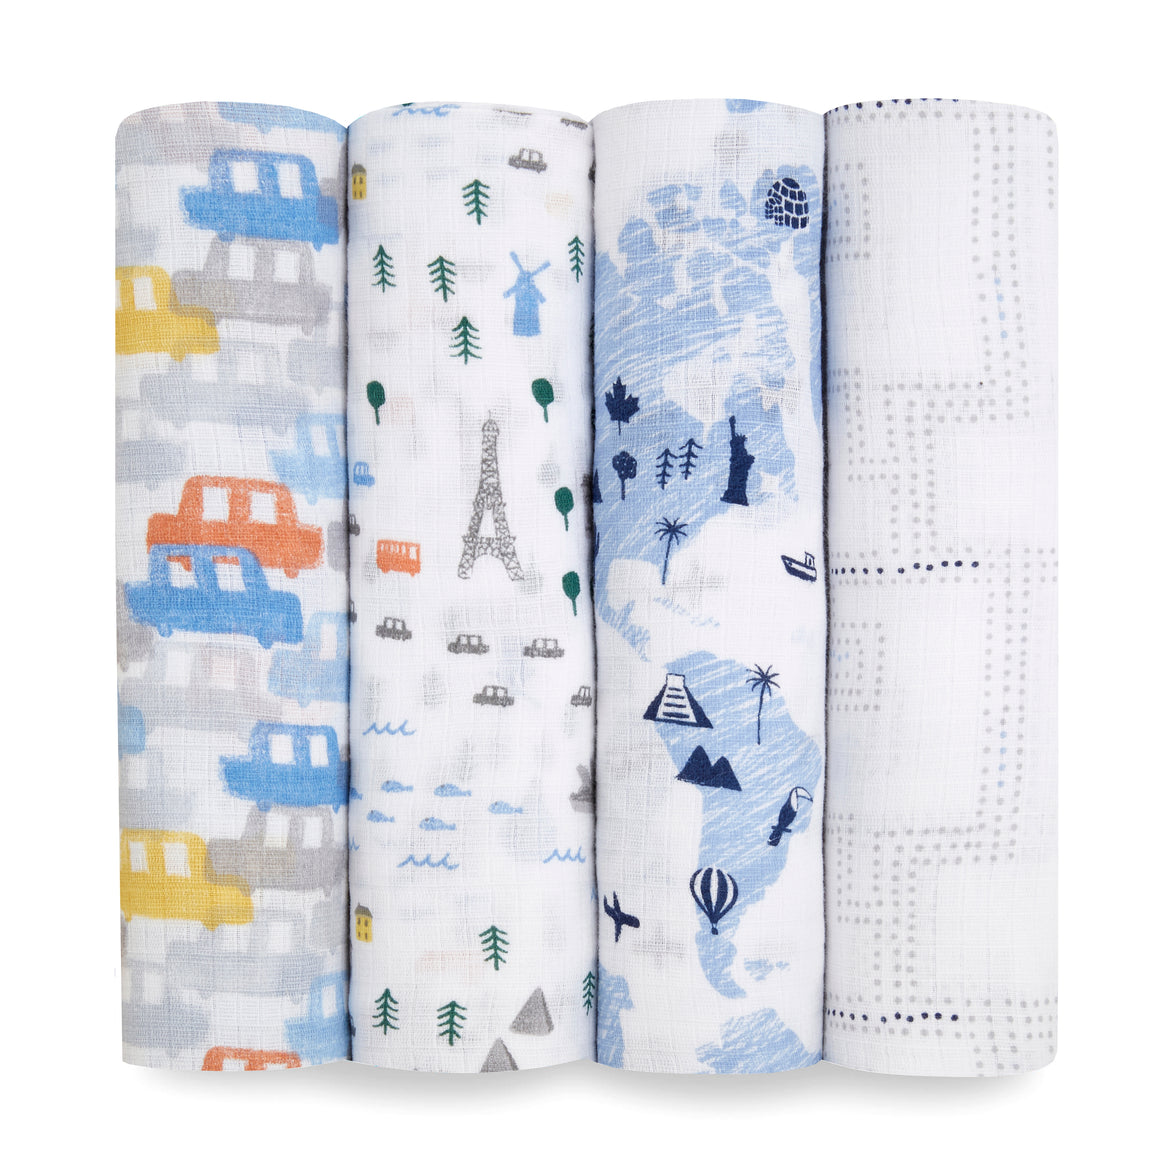 aden + anais essentials Little Big World 4pk swaddles